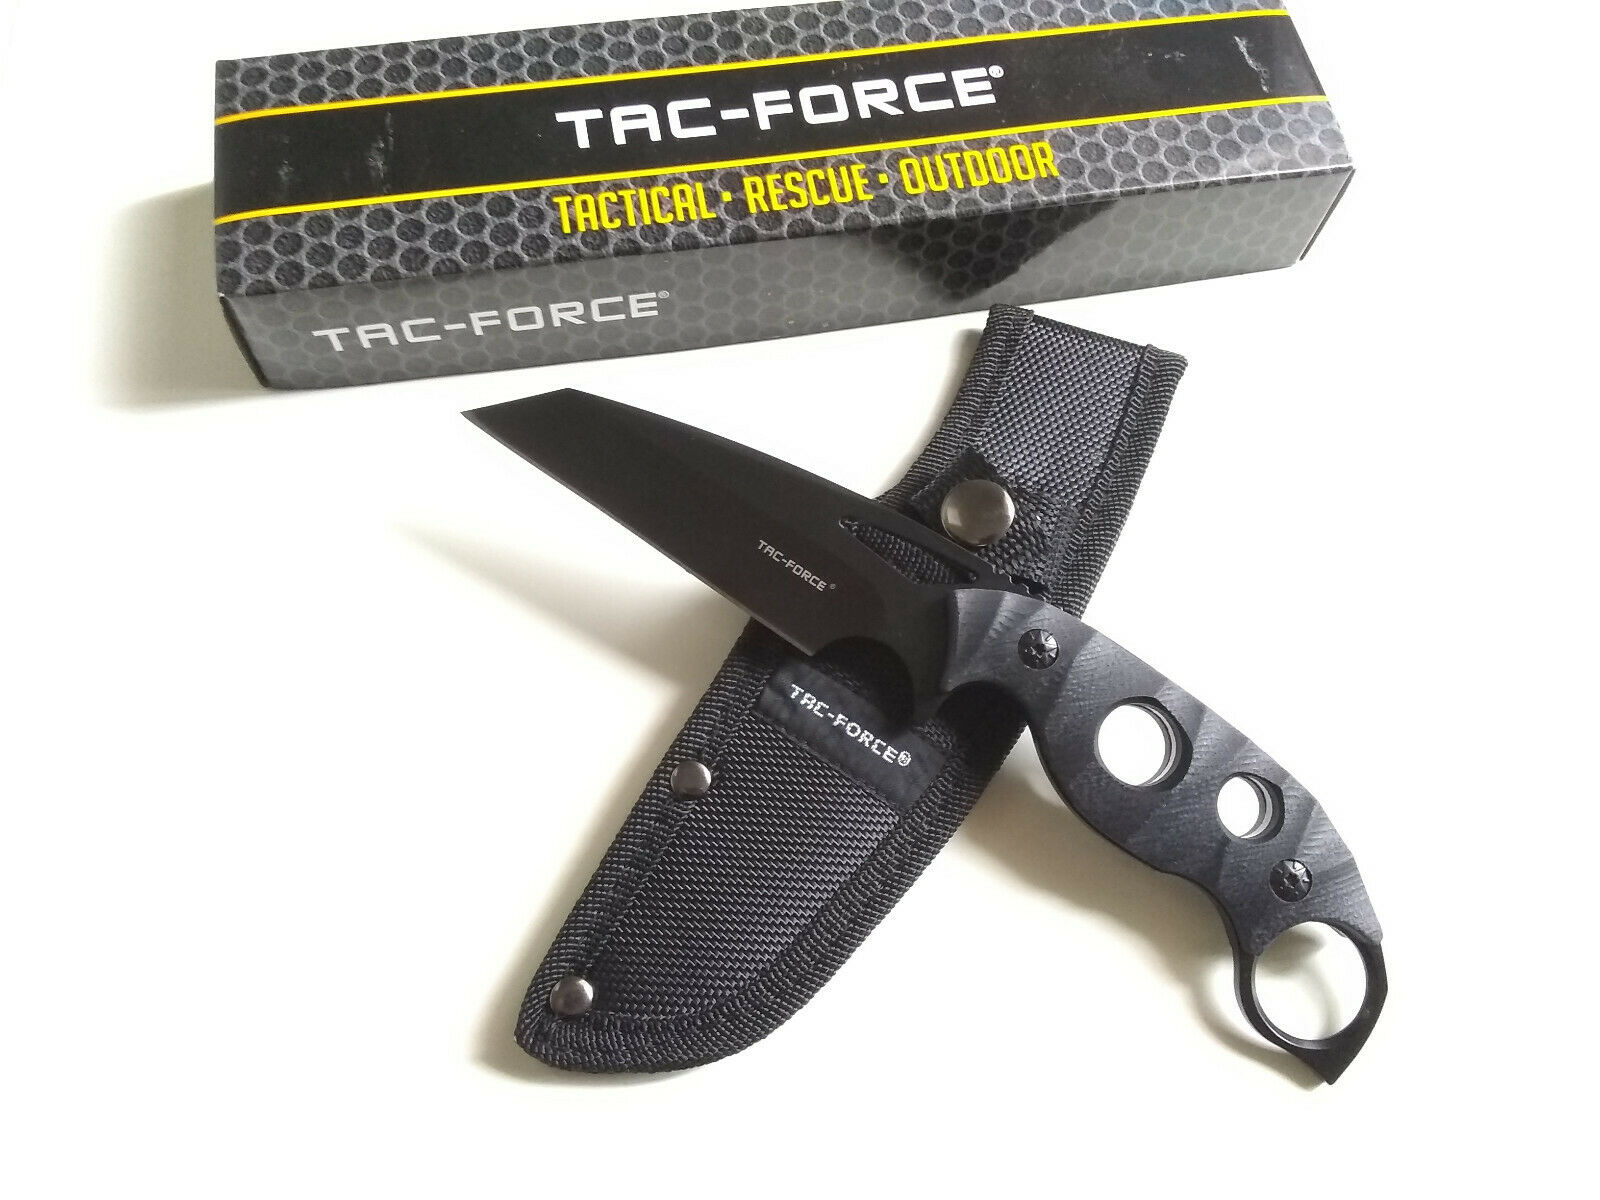 Tac-Force Wharncliffe 4.25